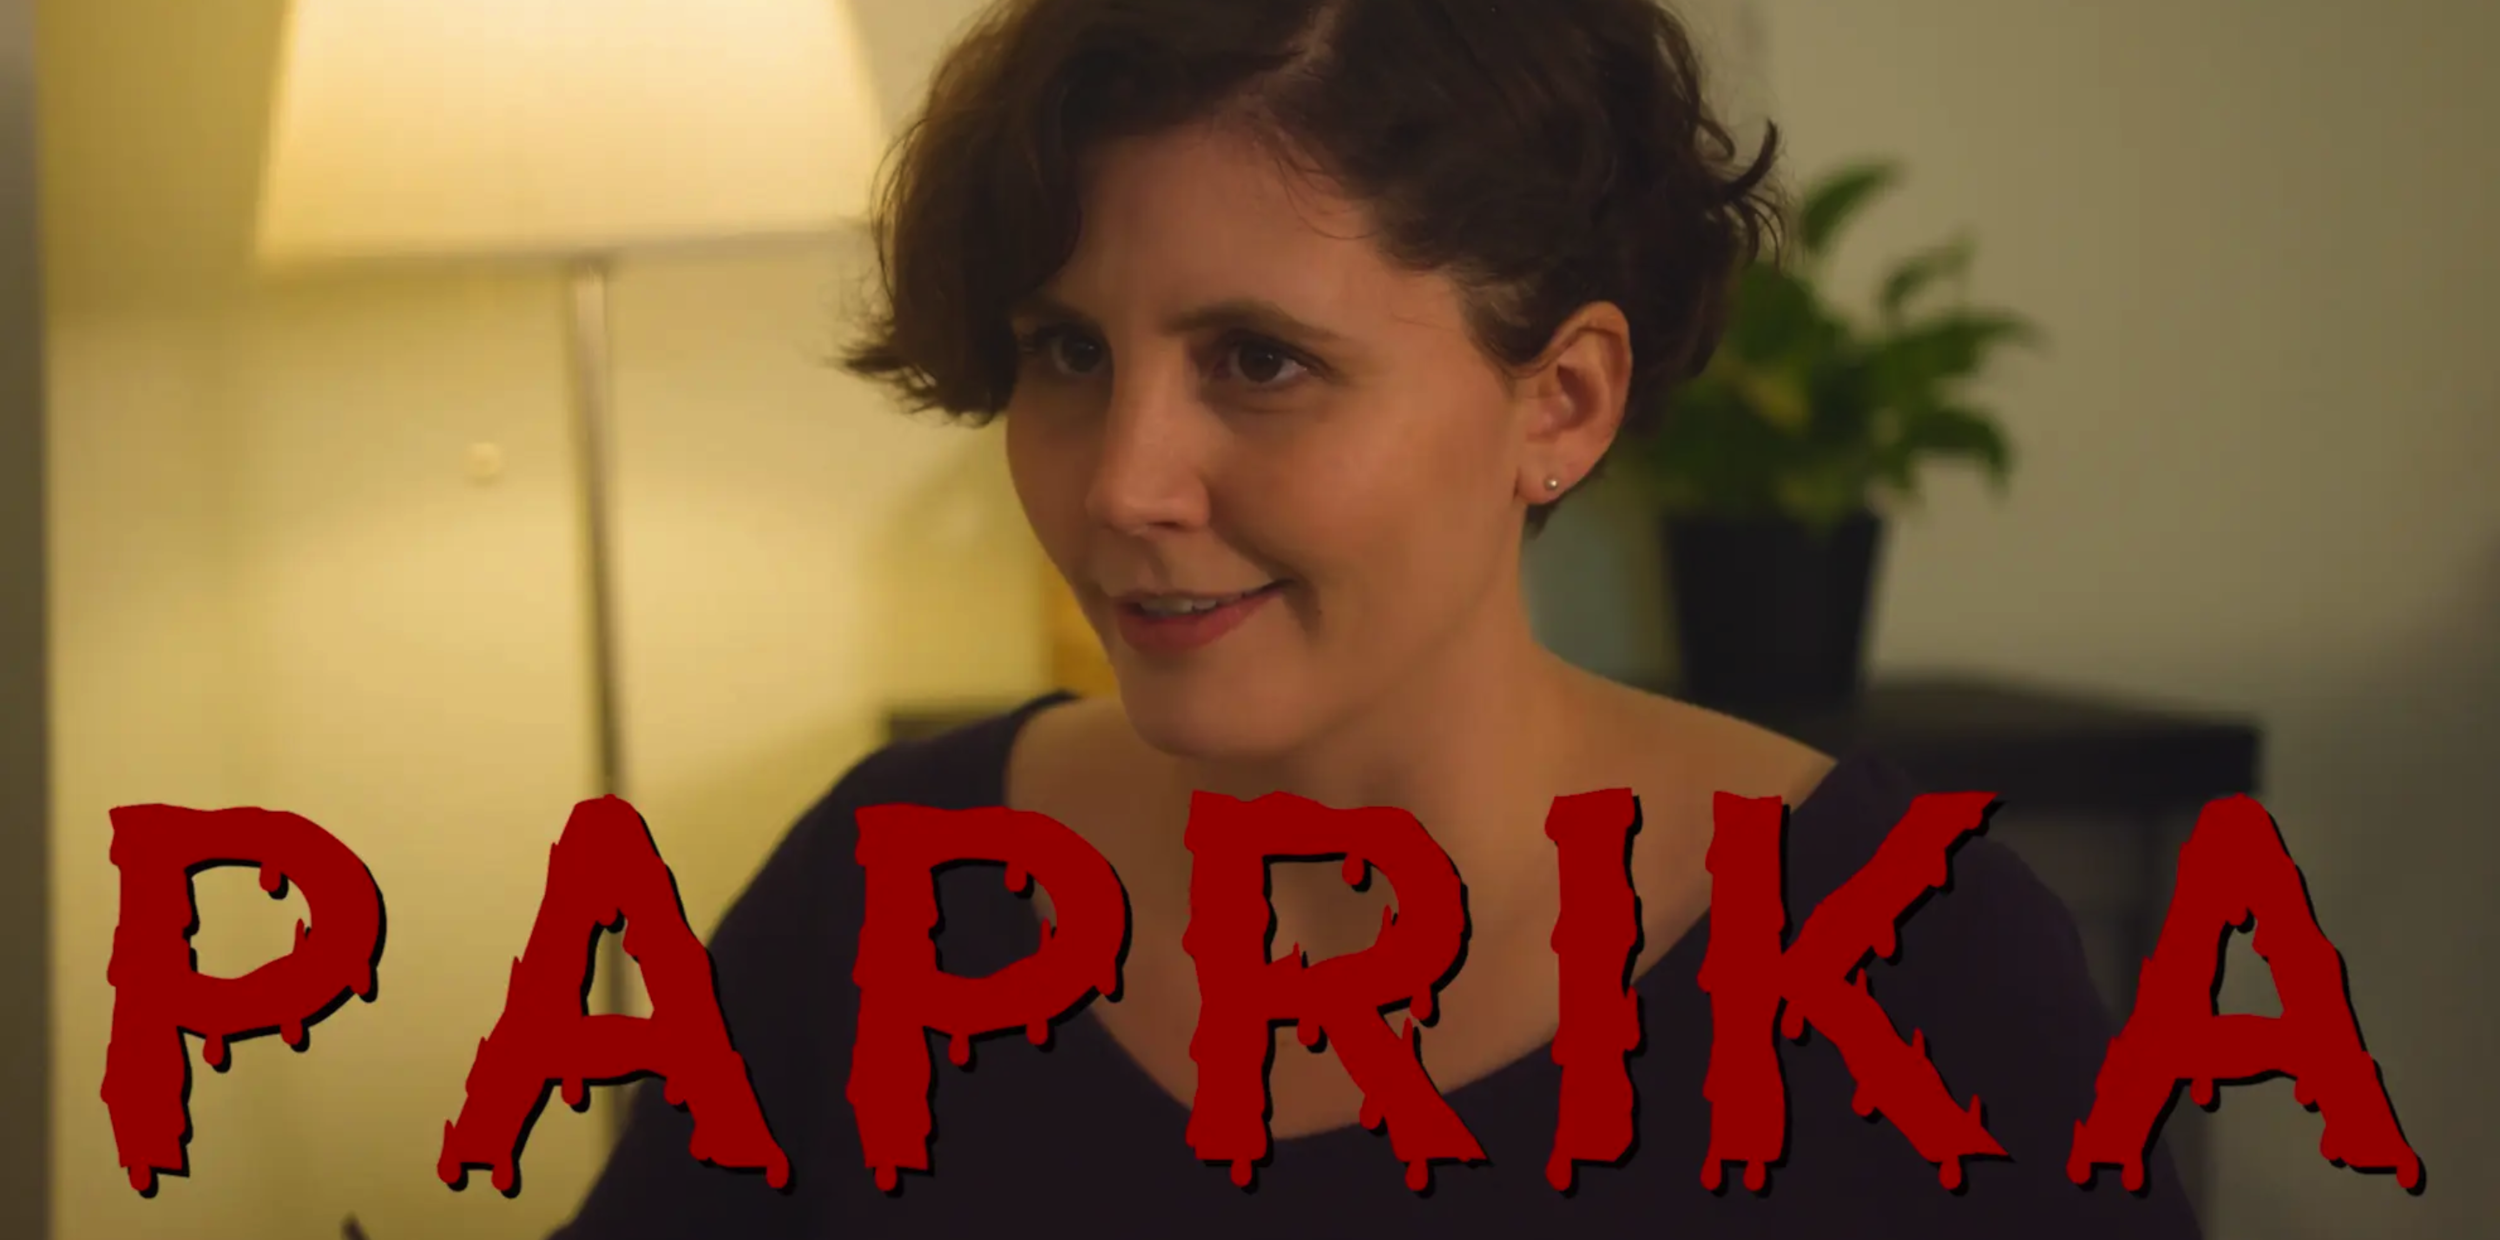 """""""Paprika"""" (3 min) - I wrote this Headcase Productions sketch about a dinner party that goes way off the rails when one of the guests reveals they have an explosive reaction to the food. It was directed by Lauren Gilbert and stars Maddie Patrick, Lorraine DeGraffenreidt, and Vaughn Harper. You can check it out HERE!"""